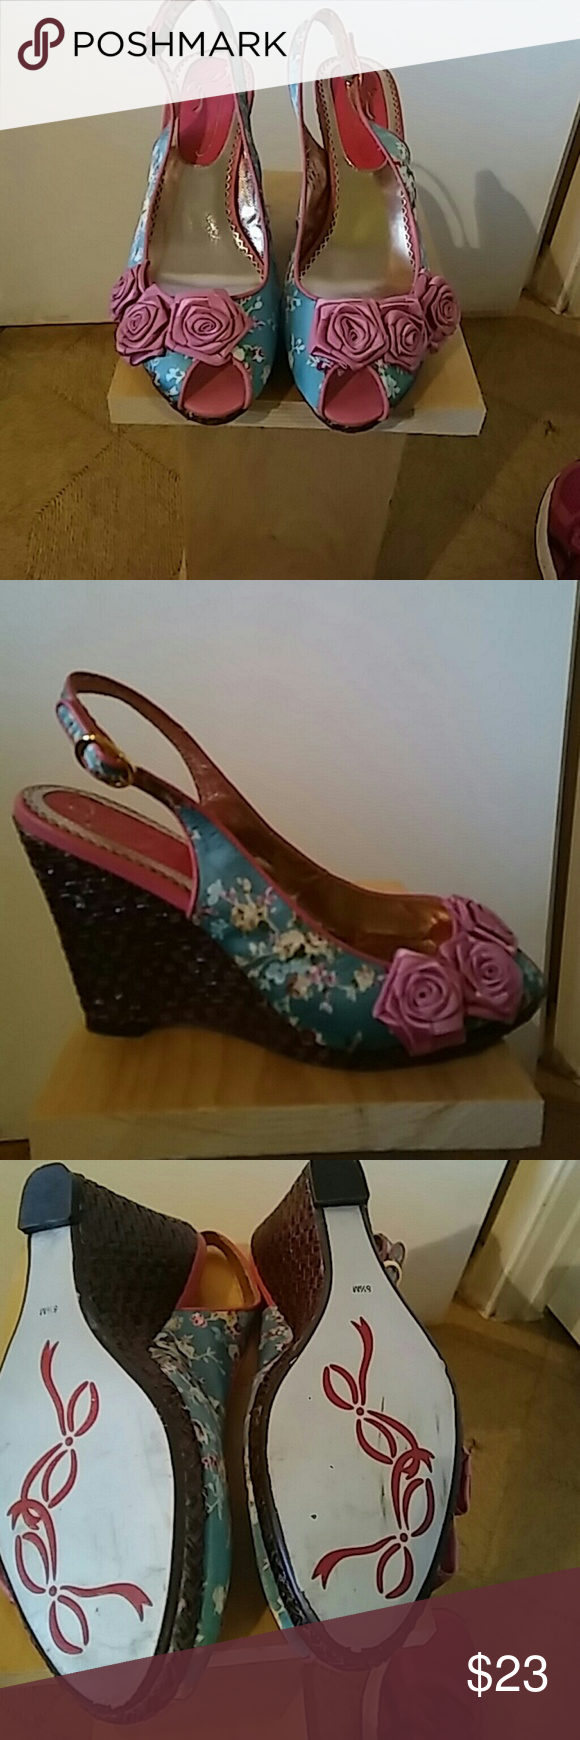 Poetic licence London wedges Peep hole rose beauties(so comfortable) Poetic Licence London Shoes Wedges